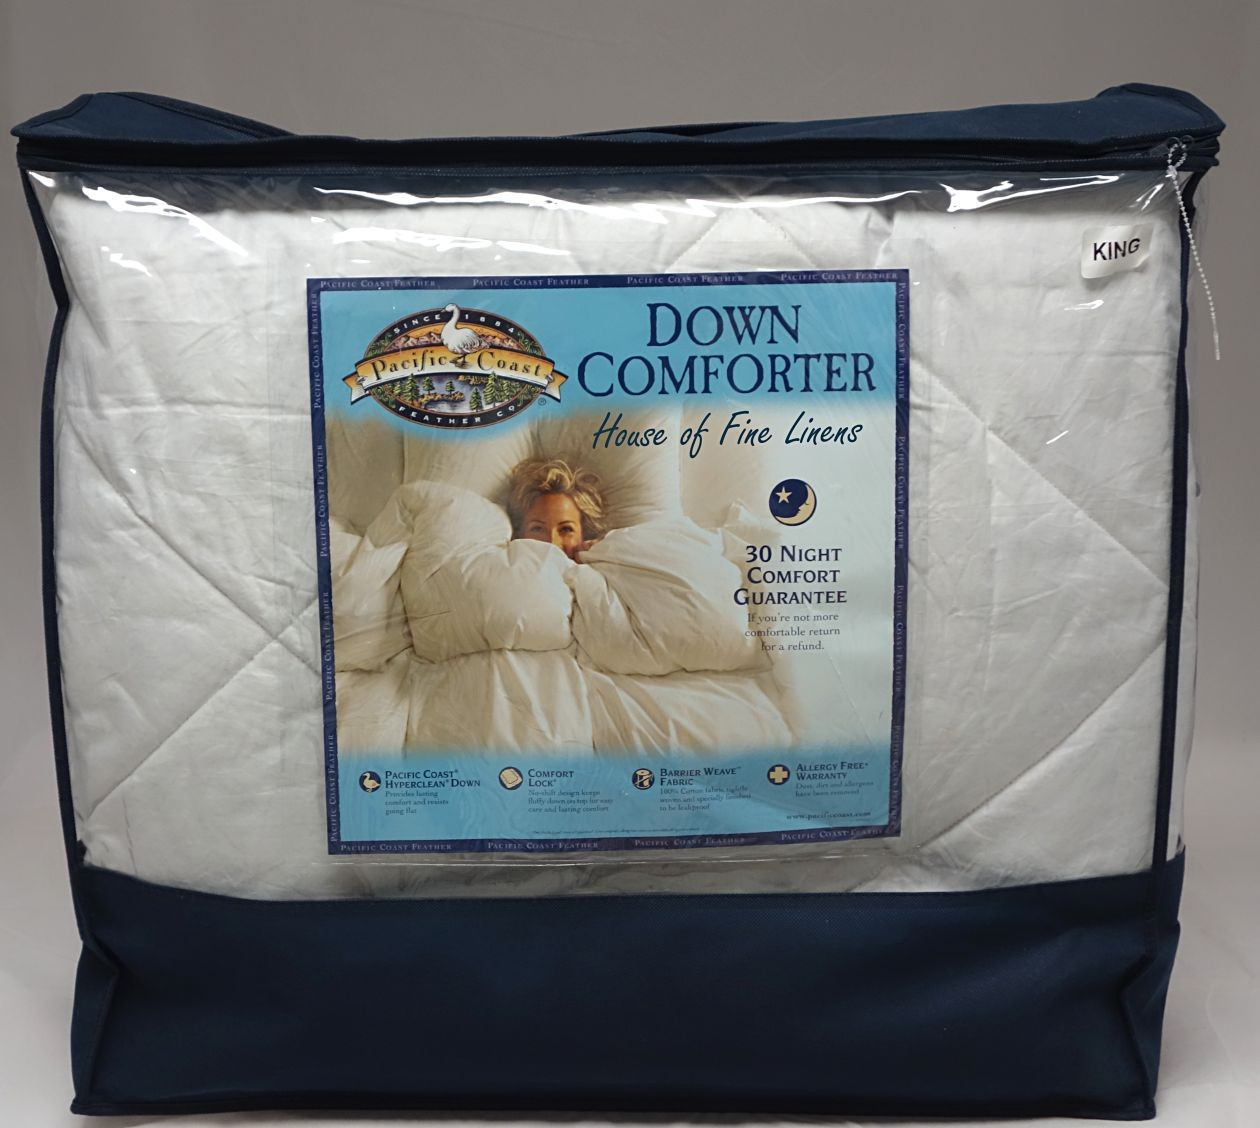 Pacific Coast Comforter | Summer Down Comforter | Pacific Coast Superloft Down Comforter